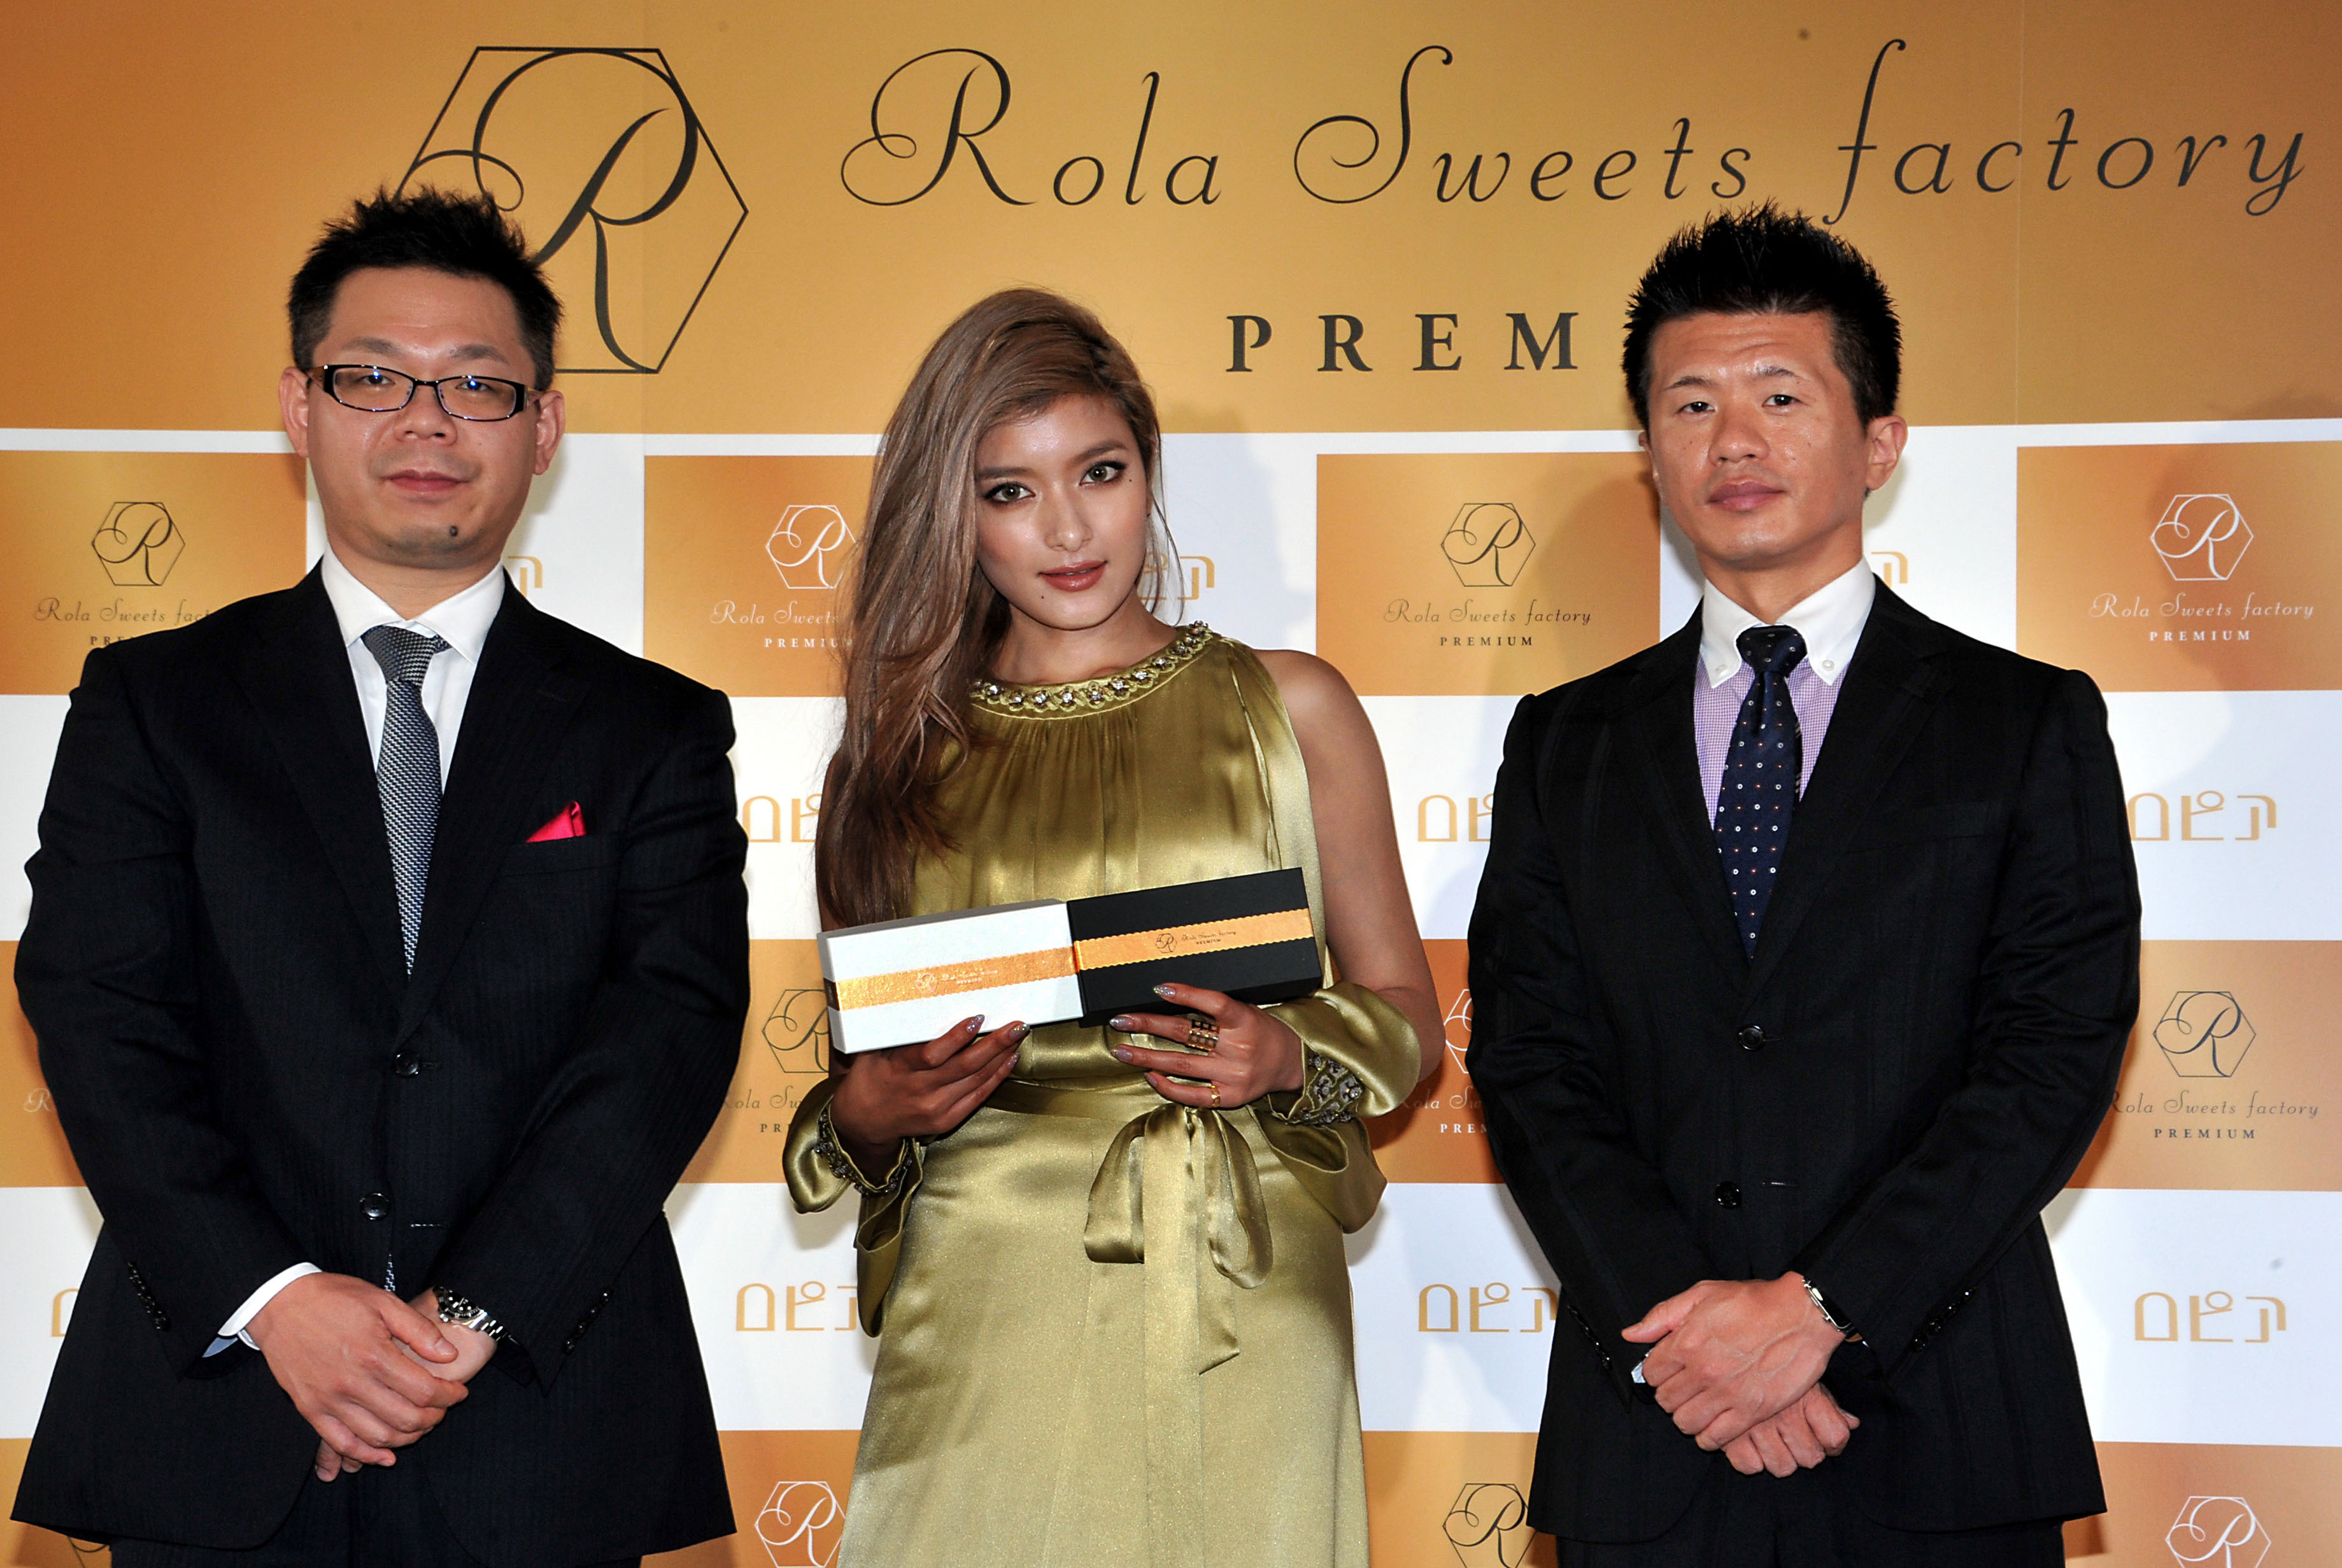 """Model and TV personality Rola (center) holds """"Rola Sweets factory PREMIUM"""" gateau chocolat and white chocolate cakes during a press conference announcing their release, with collaborating company, ROPIA Ltd., President Eiji Takai (left) and Managing Director Hajime Kawai at Arkangel Daikanyama in Tokyo on Dec. 15. (www.rolasweetsfactory.jp) 